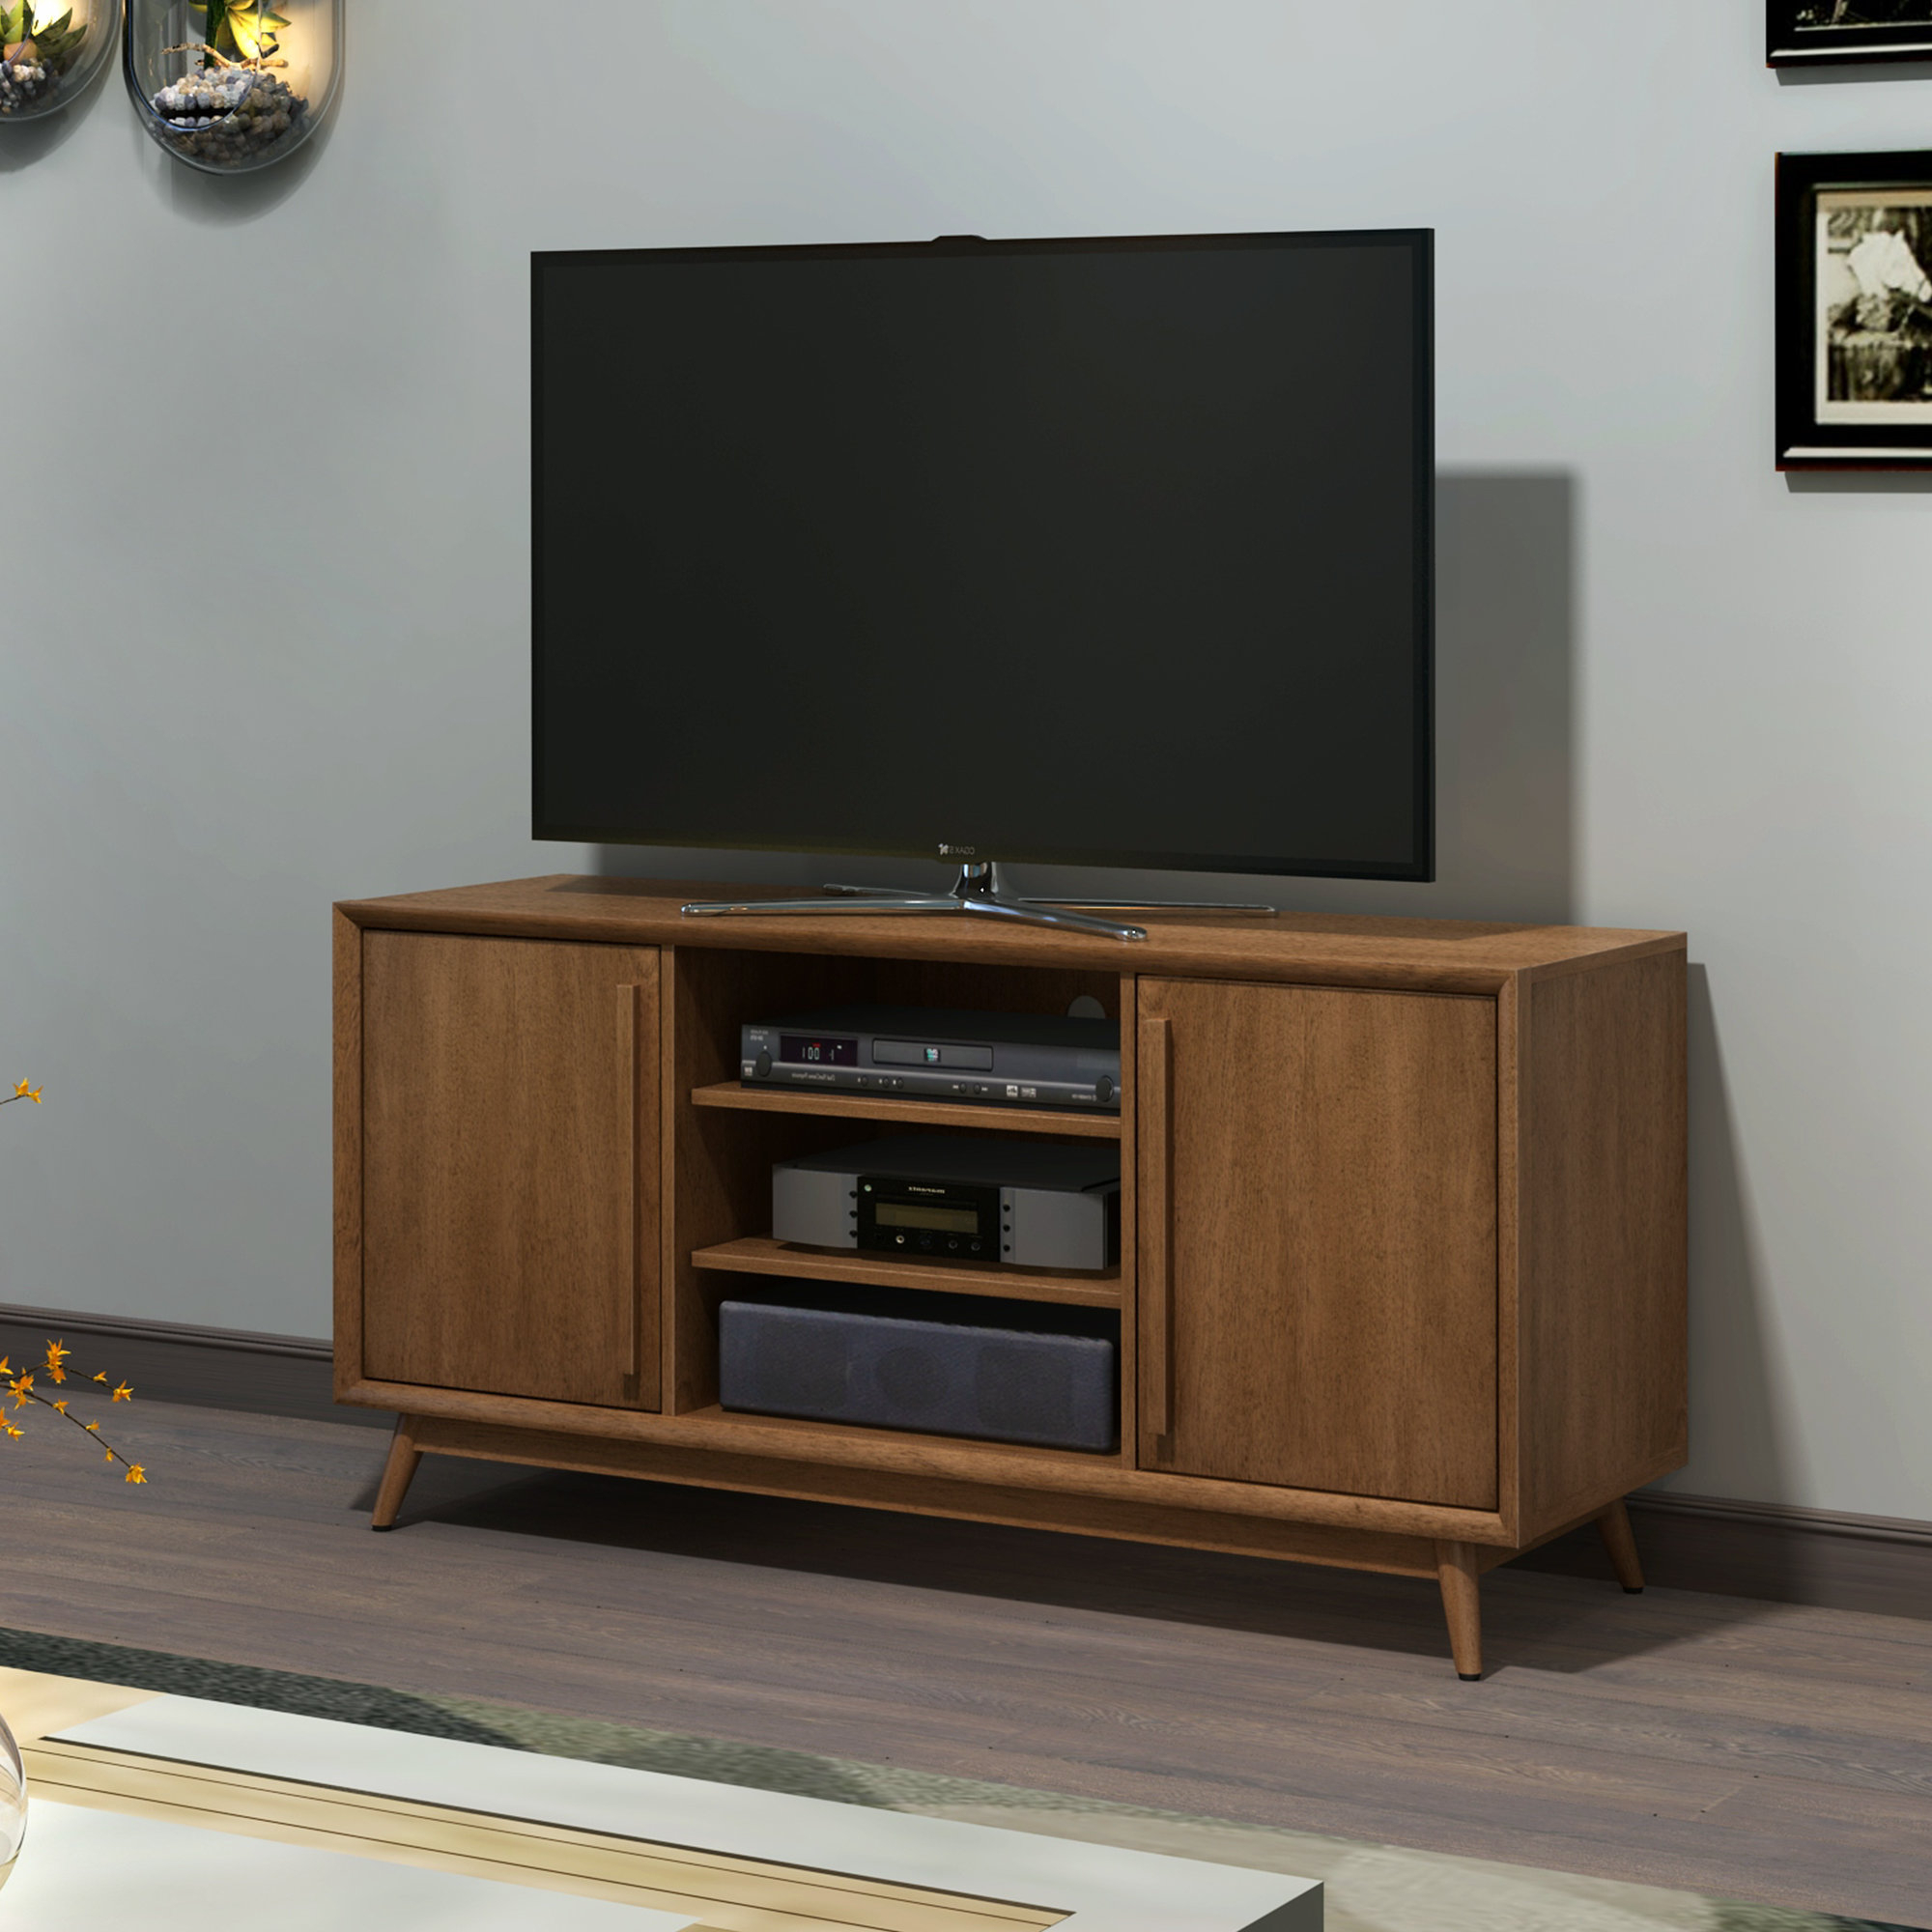 2018 Mid Century Modern Tv Stands You'll Love (View 14 of 20)